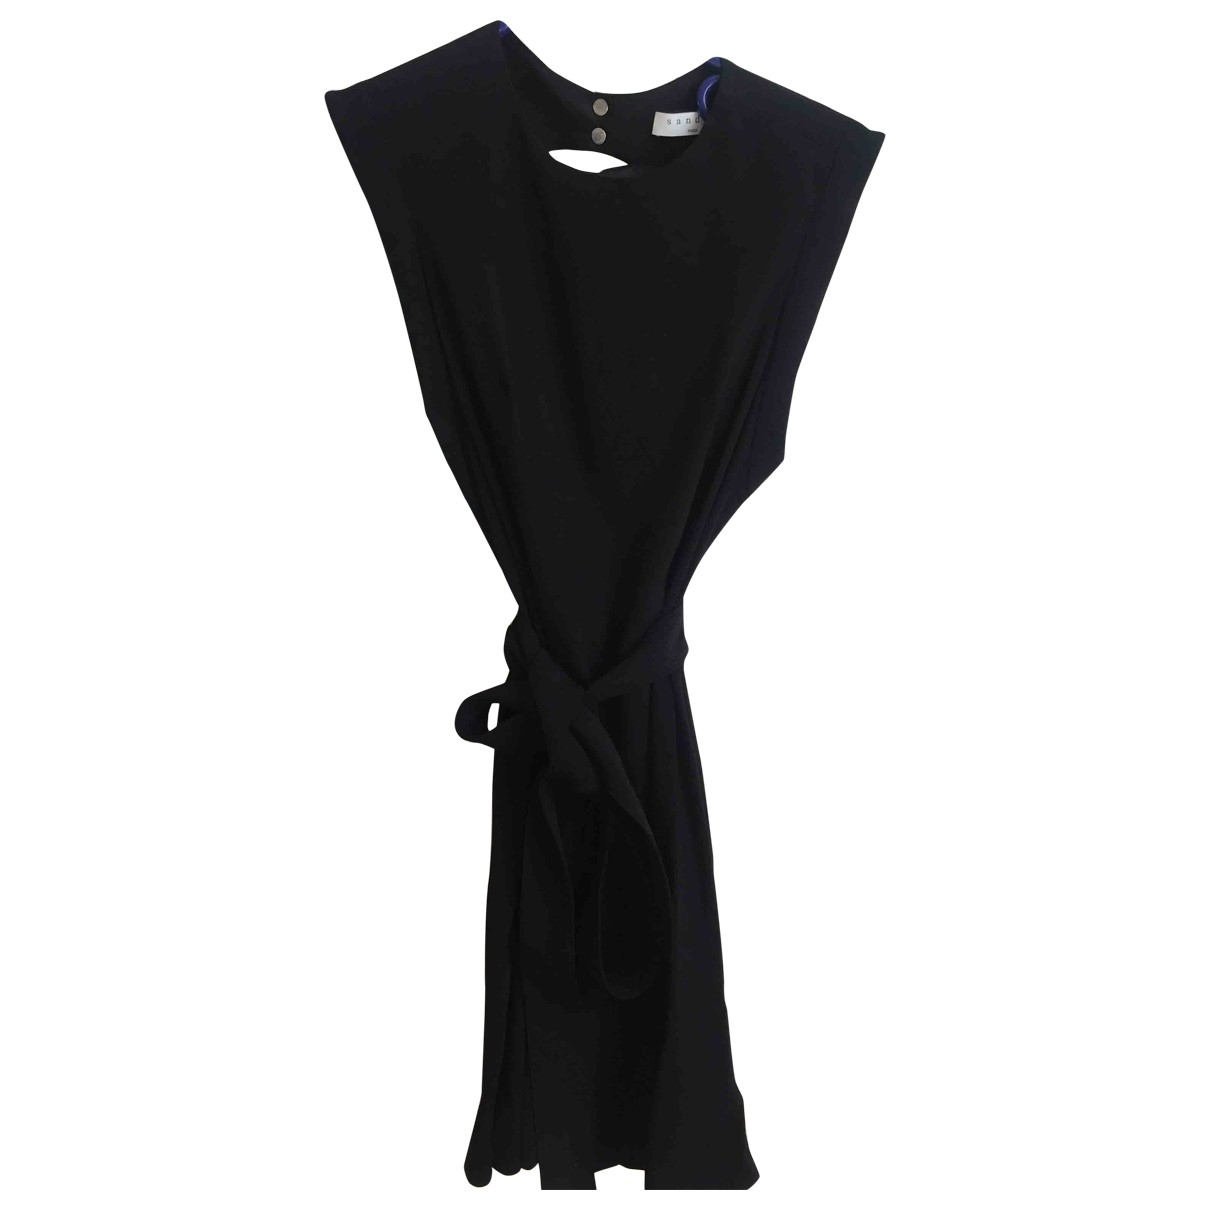 Sandro \N Black dress for Women 38 FR